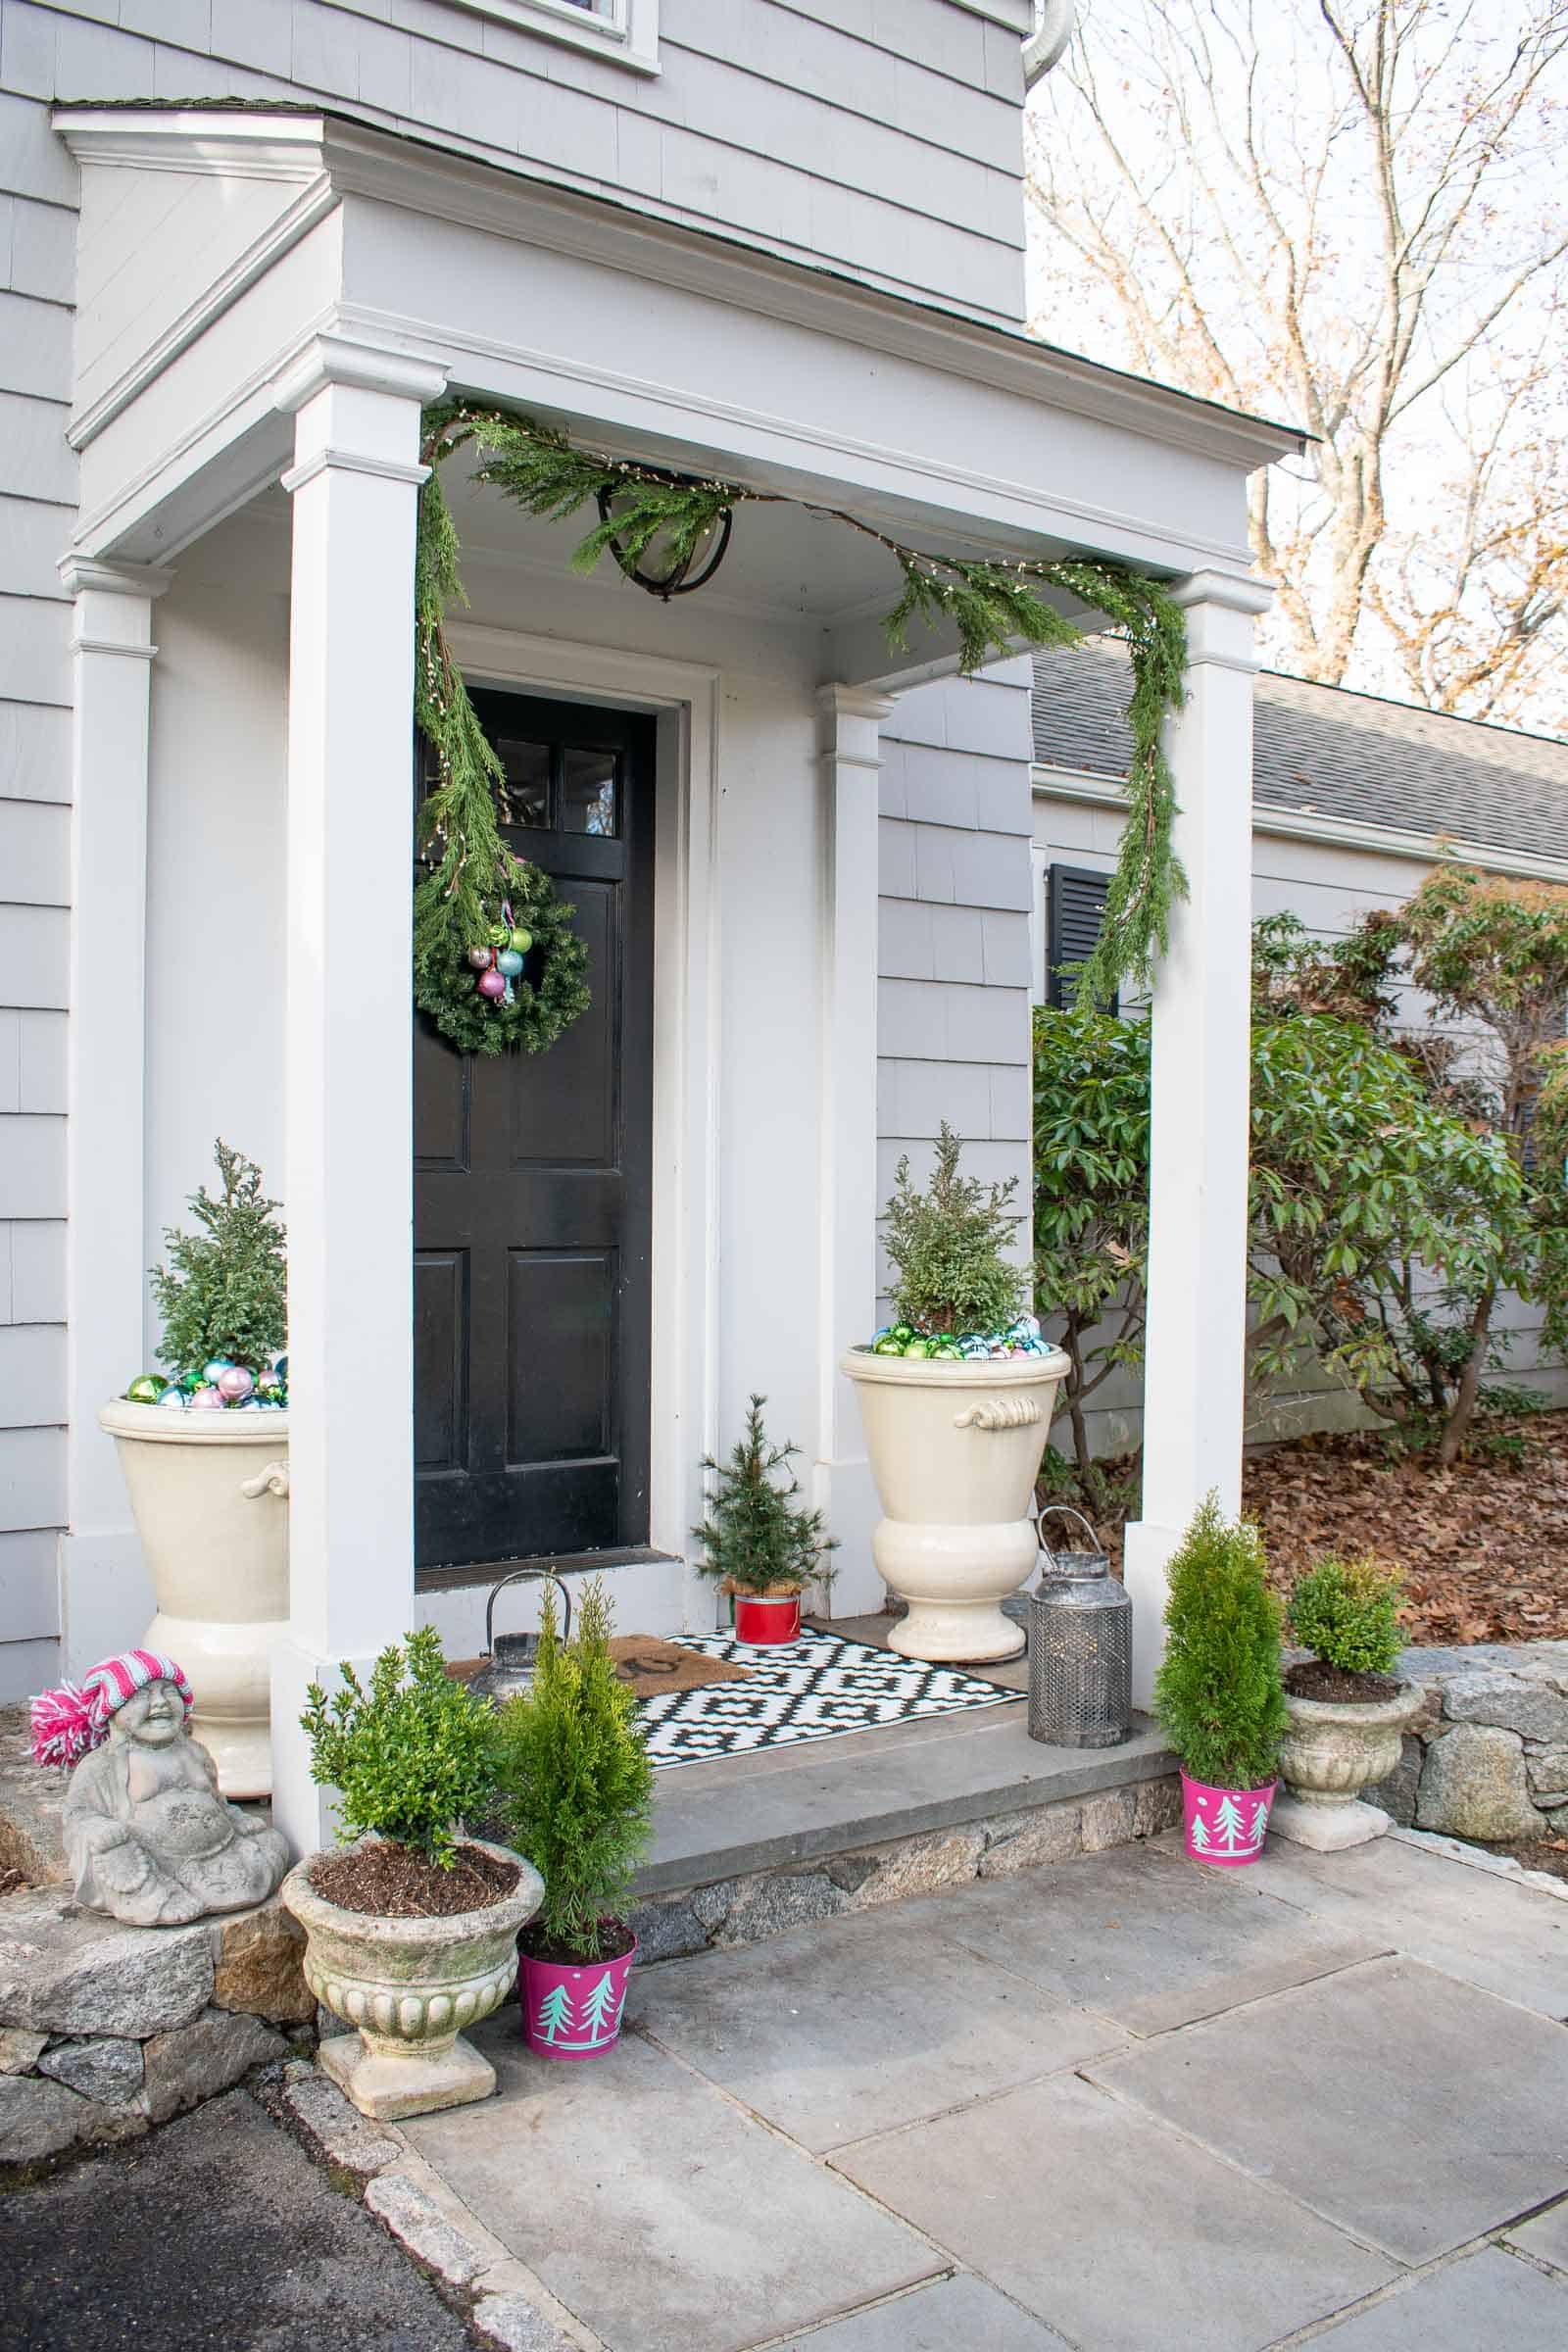 colorful planters on front porch